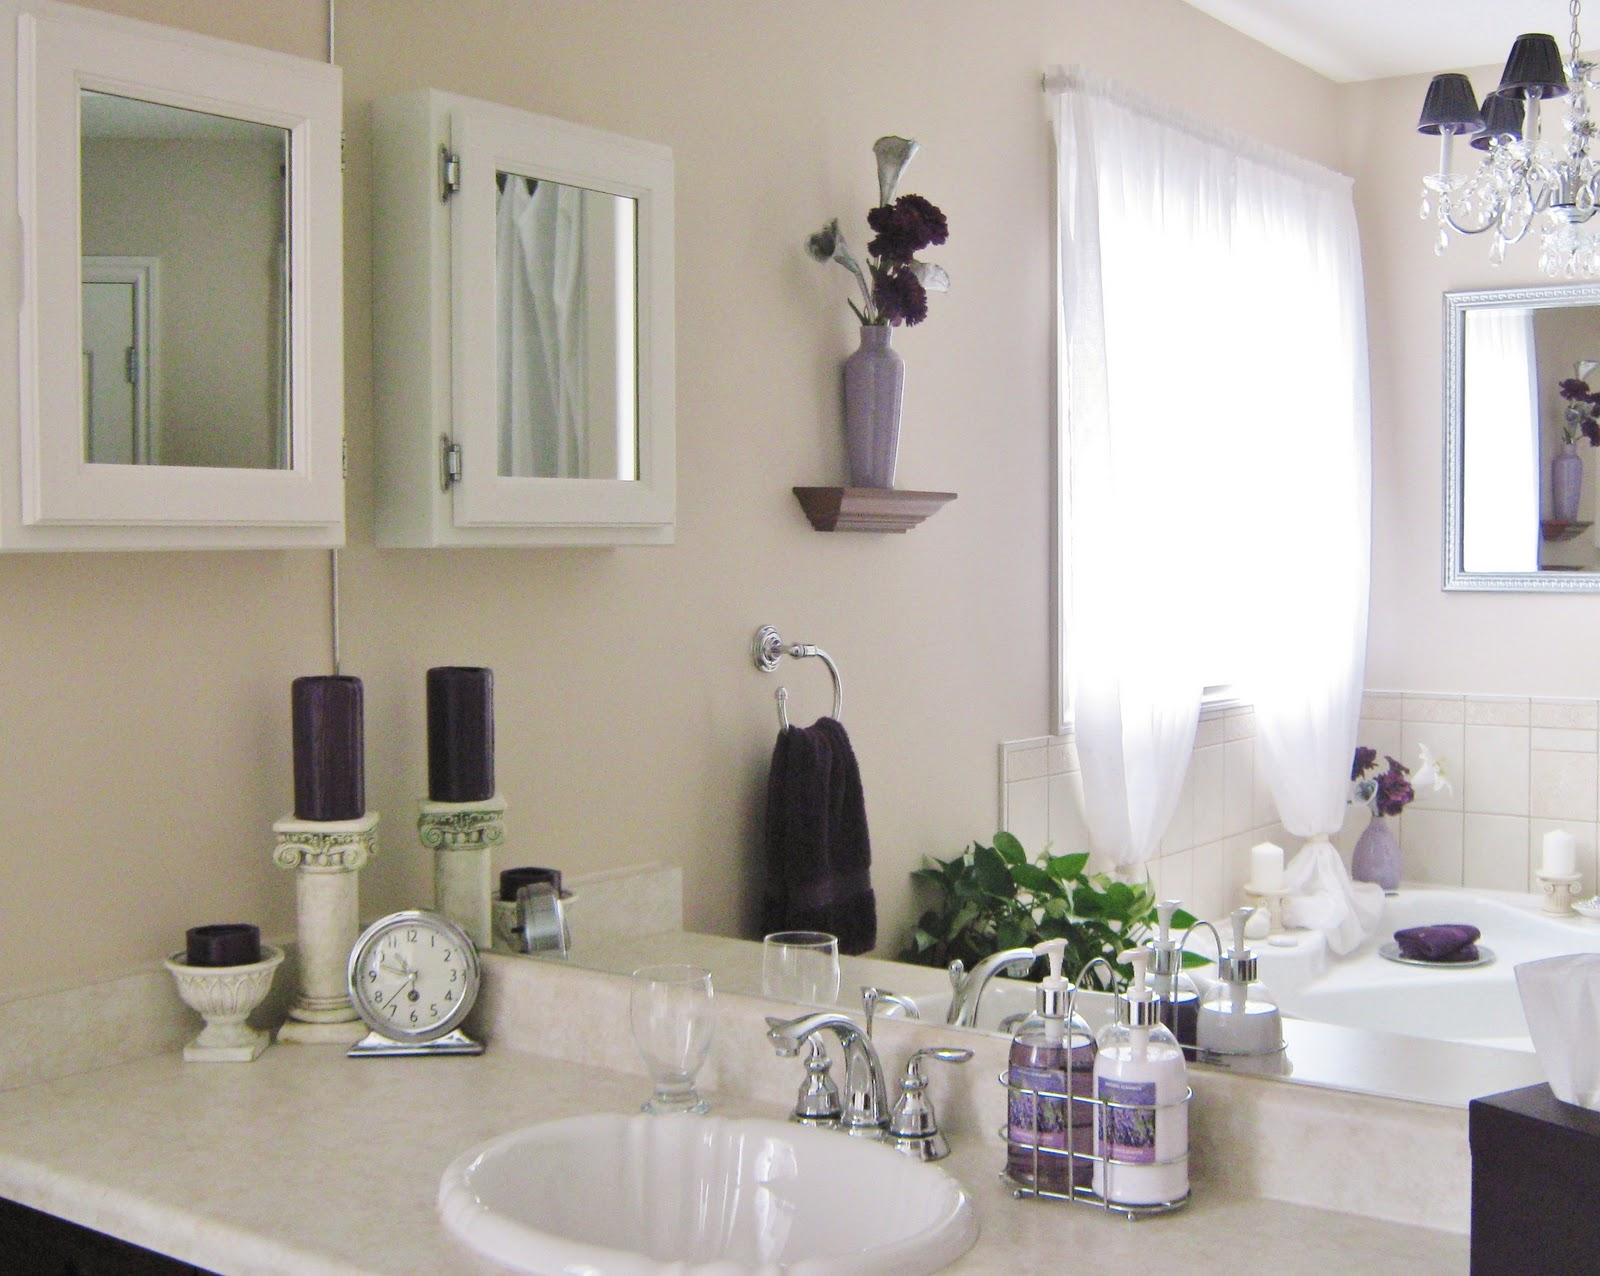 Bathroom Decor Sets cool ideas of bathroom decor sets with amazing home decorations as wells as RJQFGEQ